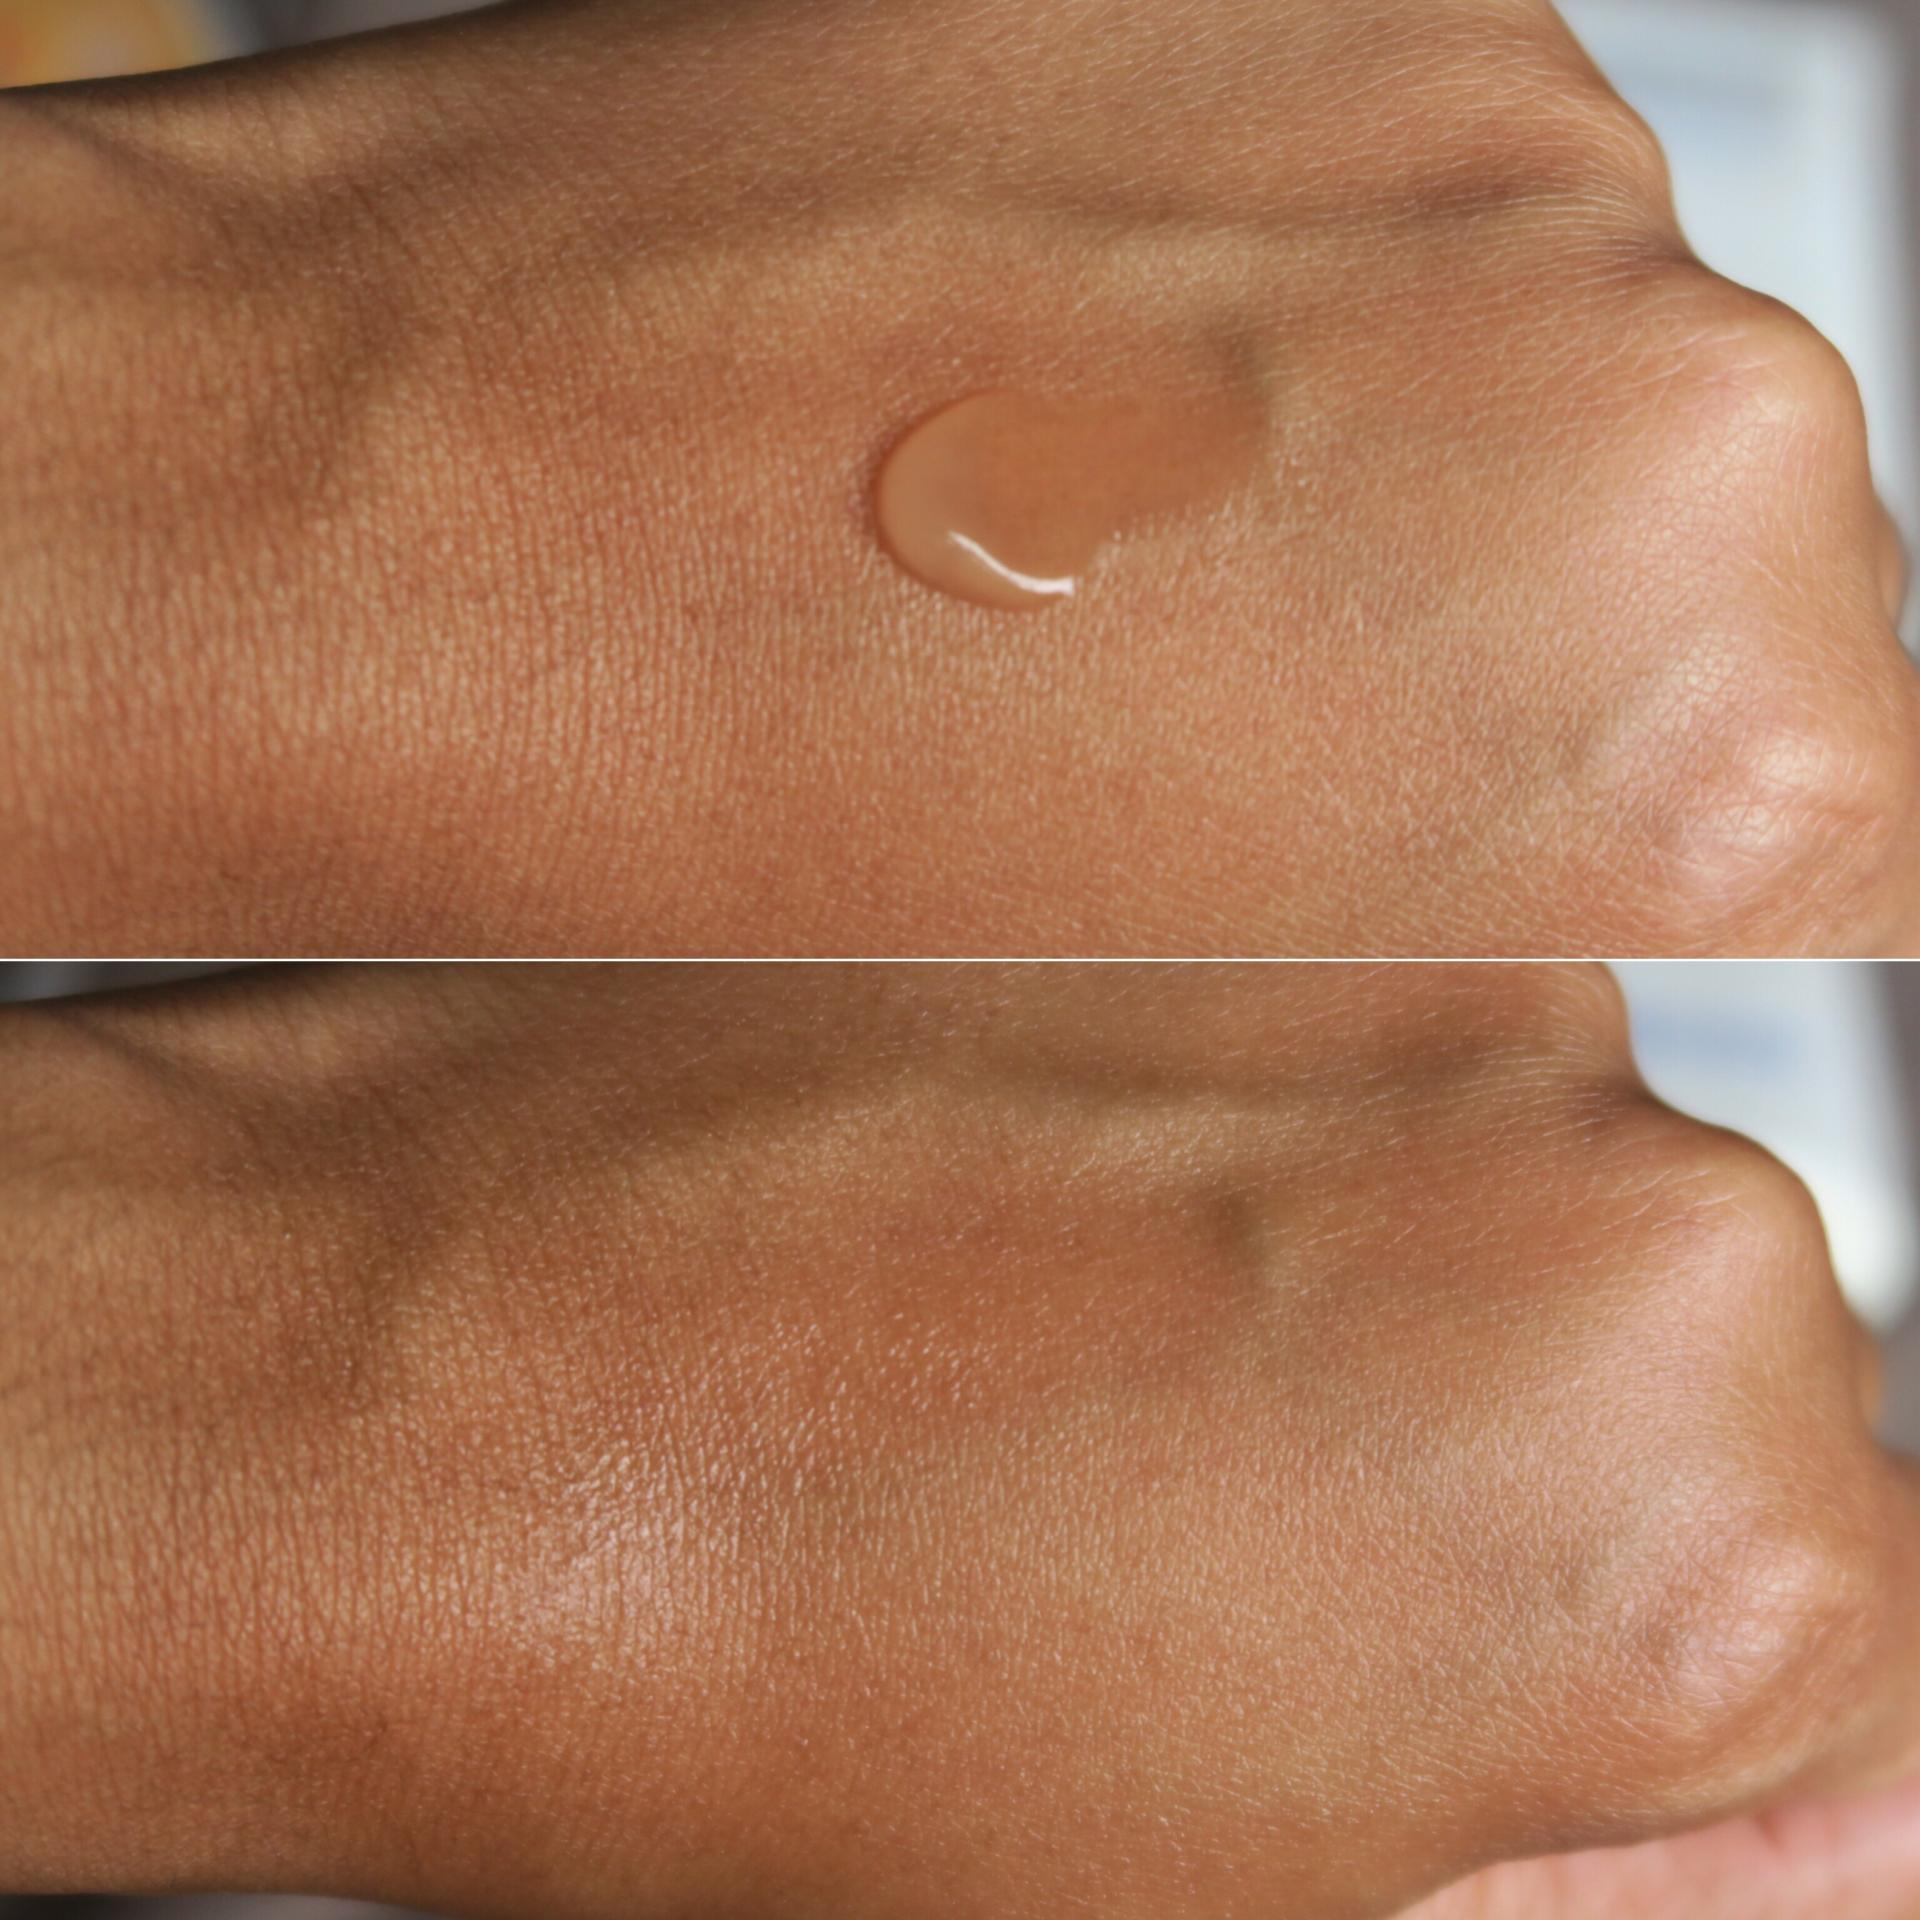 Swatch of Supergoop Unseen Sunscreen on Brown Skin